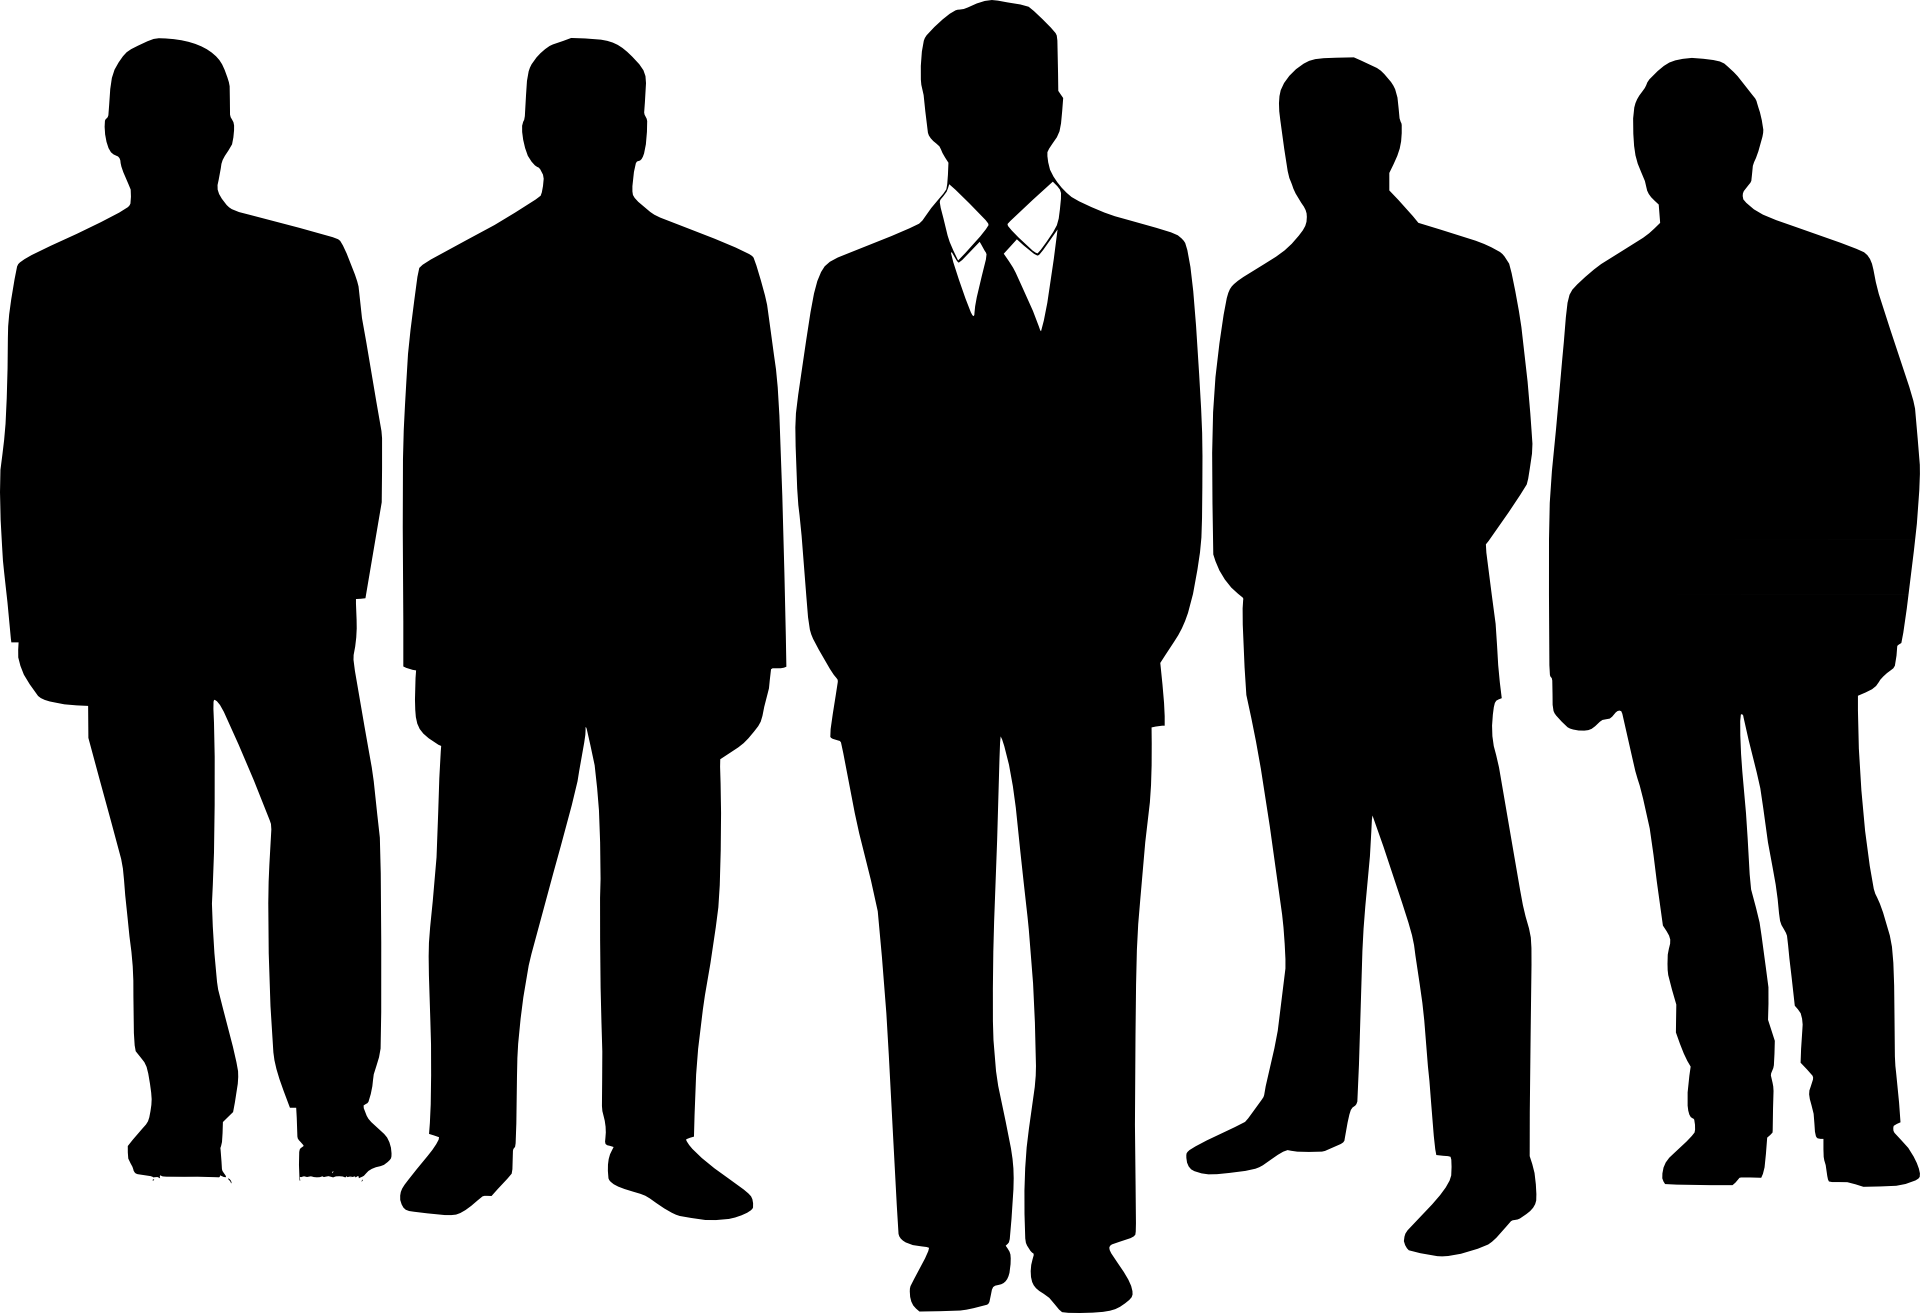 medium resolution of business people silhouette clipart panda free clipart images